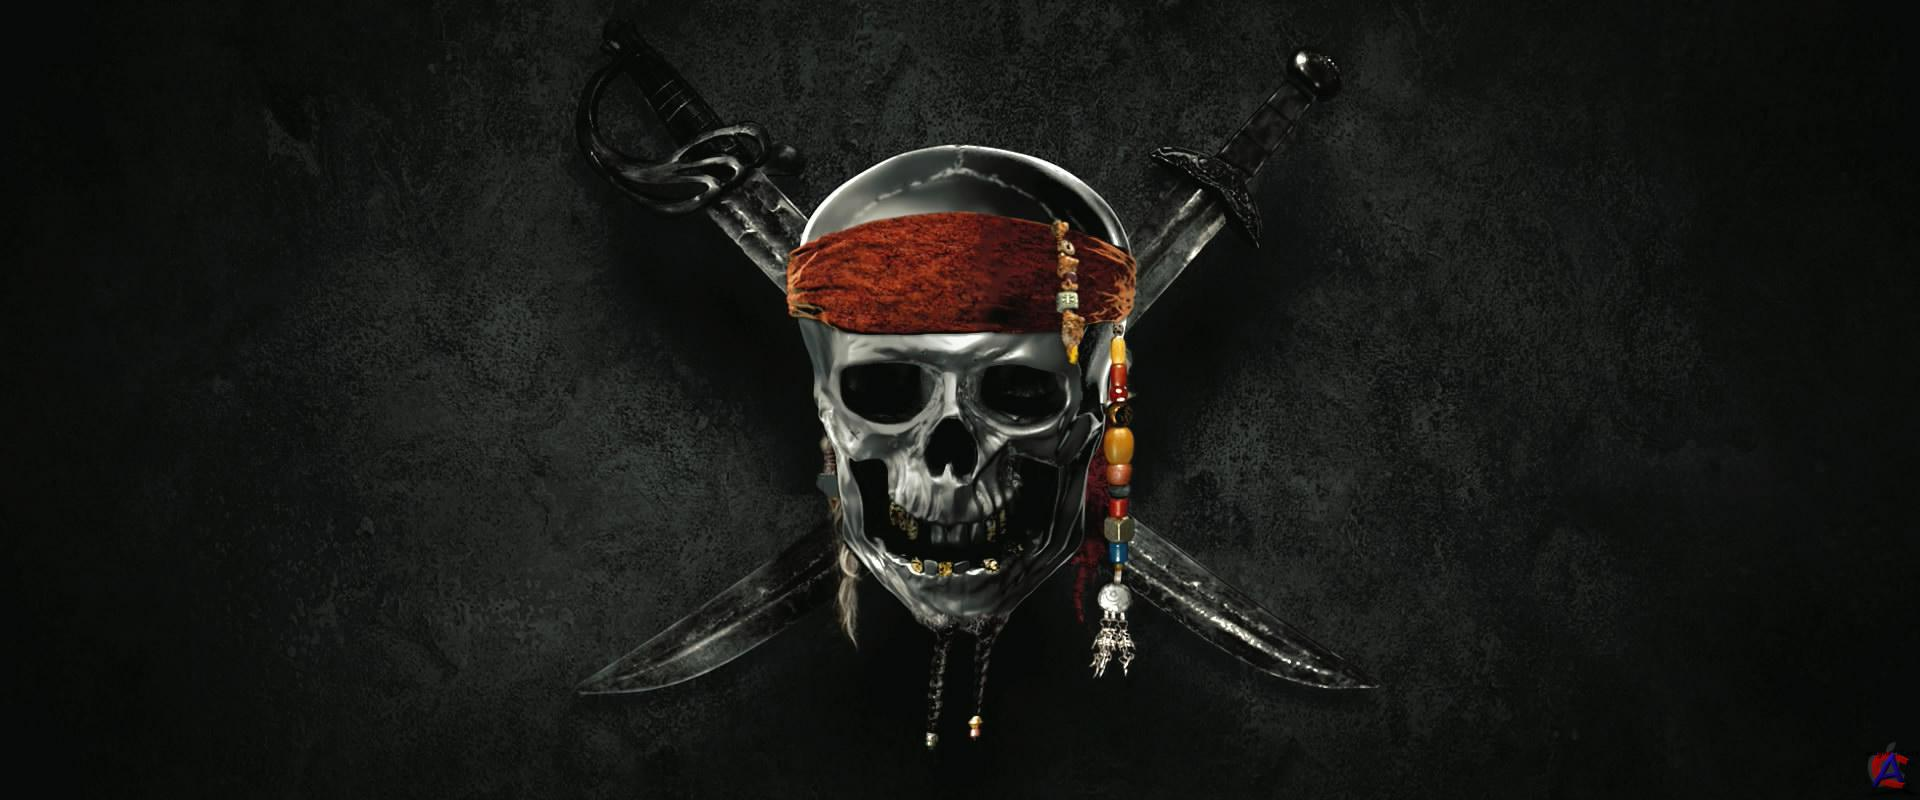 Pirates of the caribean parody porn pictures porn galleries